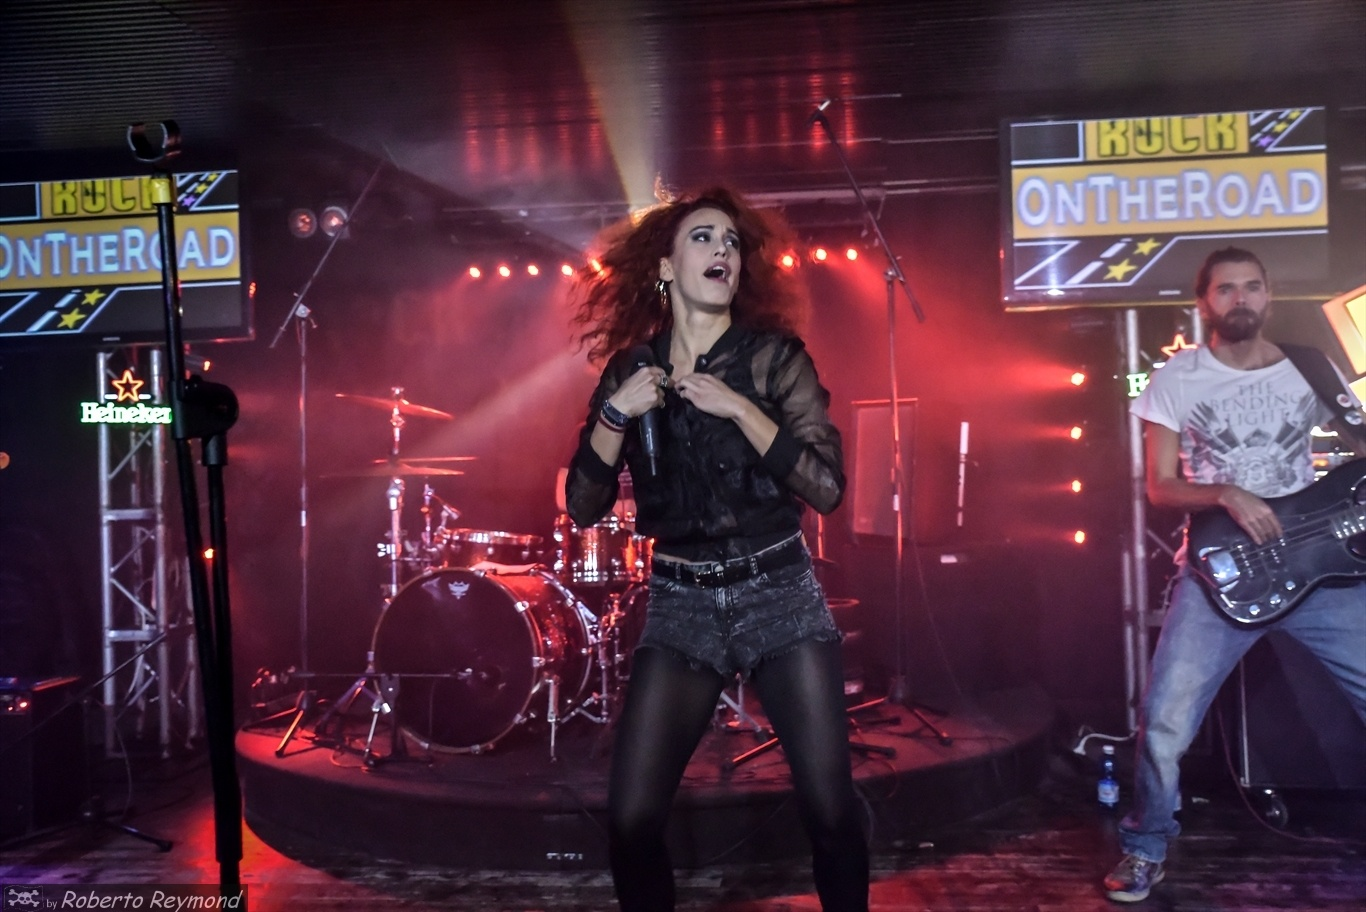 ALTERED at Rock on the Road 01 by Roberto Reymond